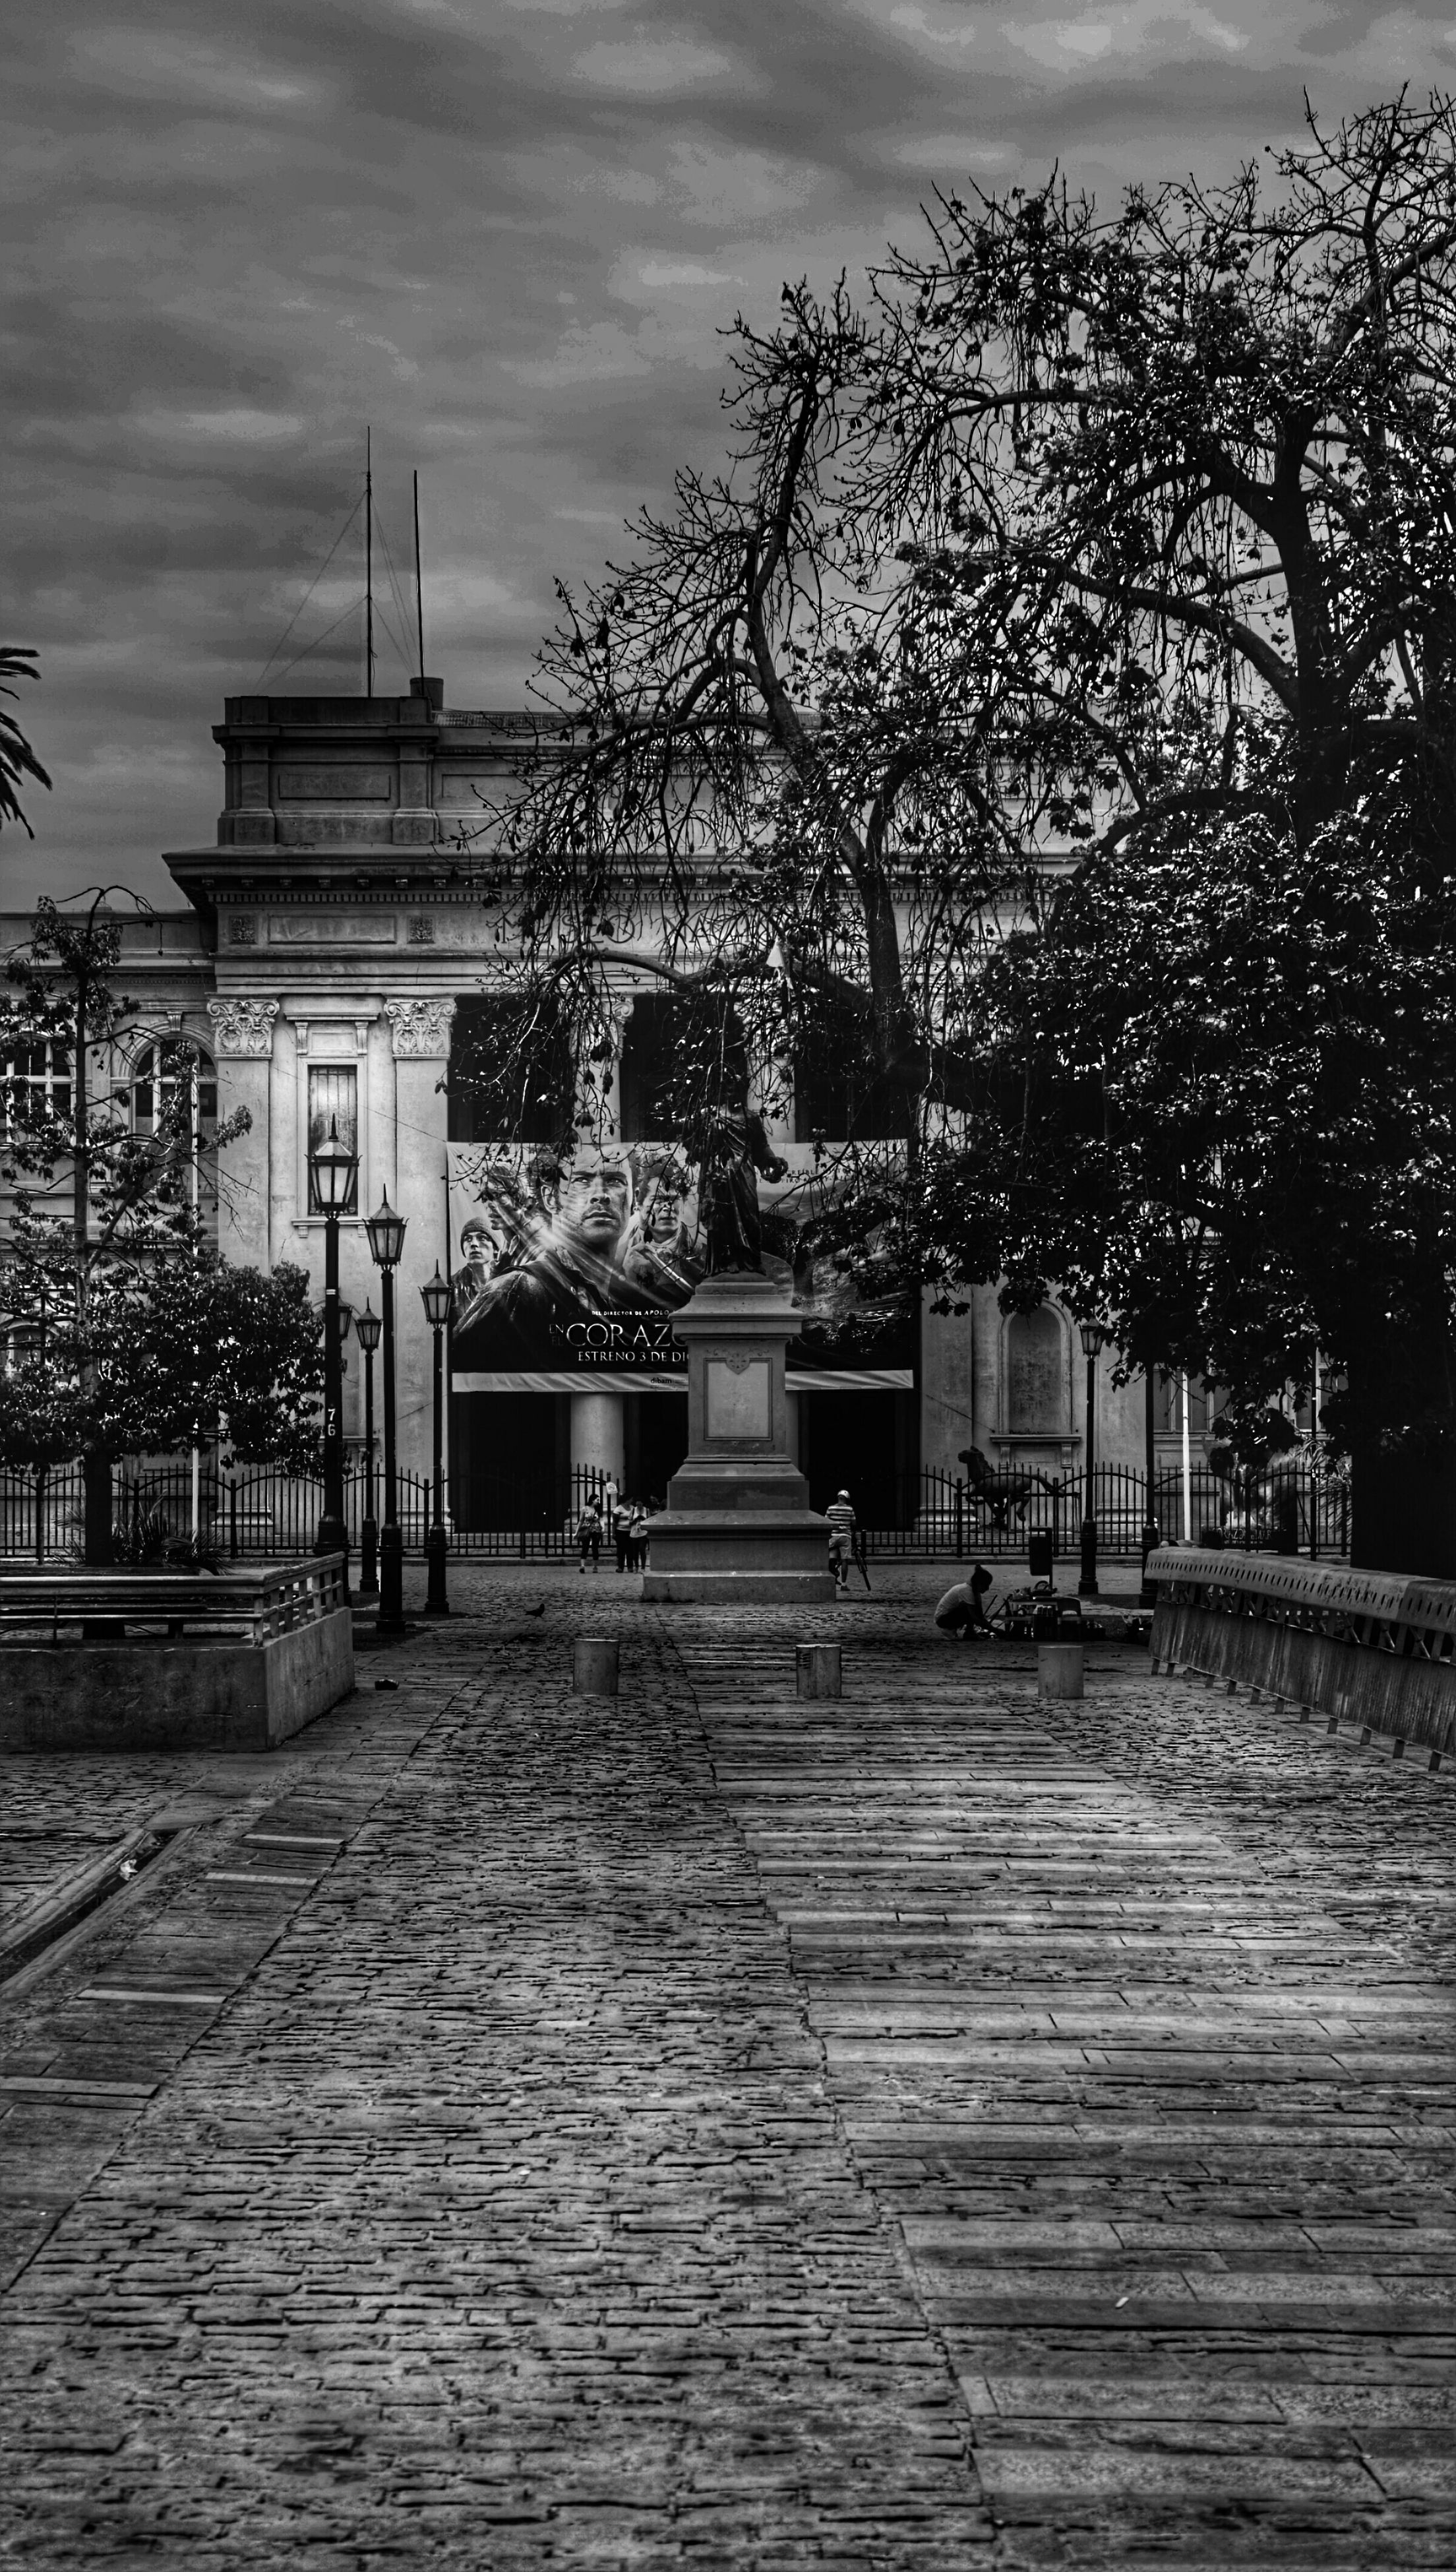 architecture, built structure, building exterior, tree, sky, cobblestone, the way forward, place of worship, religion, day, outdoors, entrance, footpath, gate, facade, architectural column, spirituality, steps, walkway, house